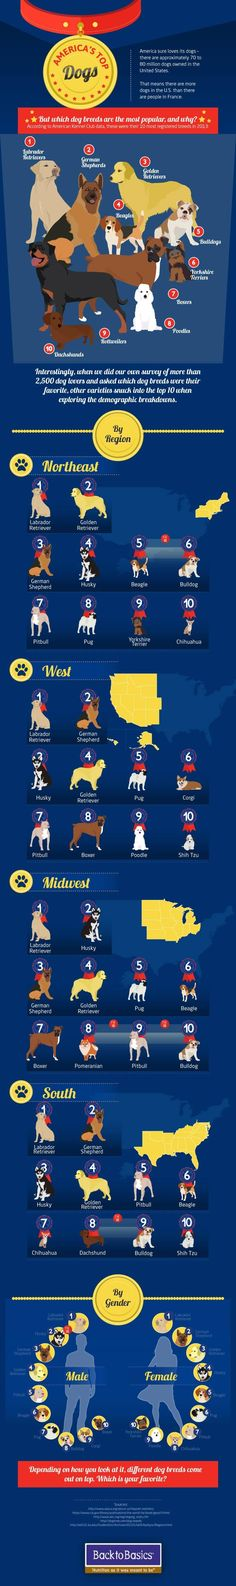 Here are the most popular dogs in America.